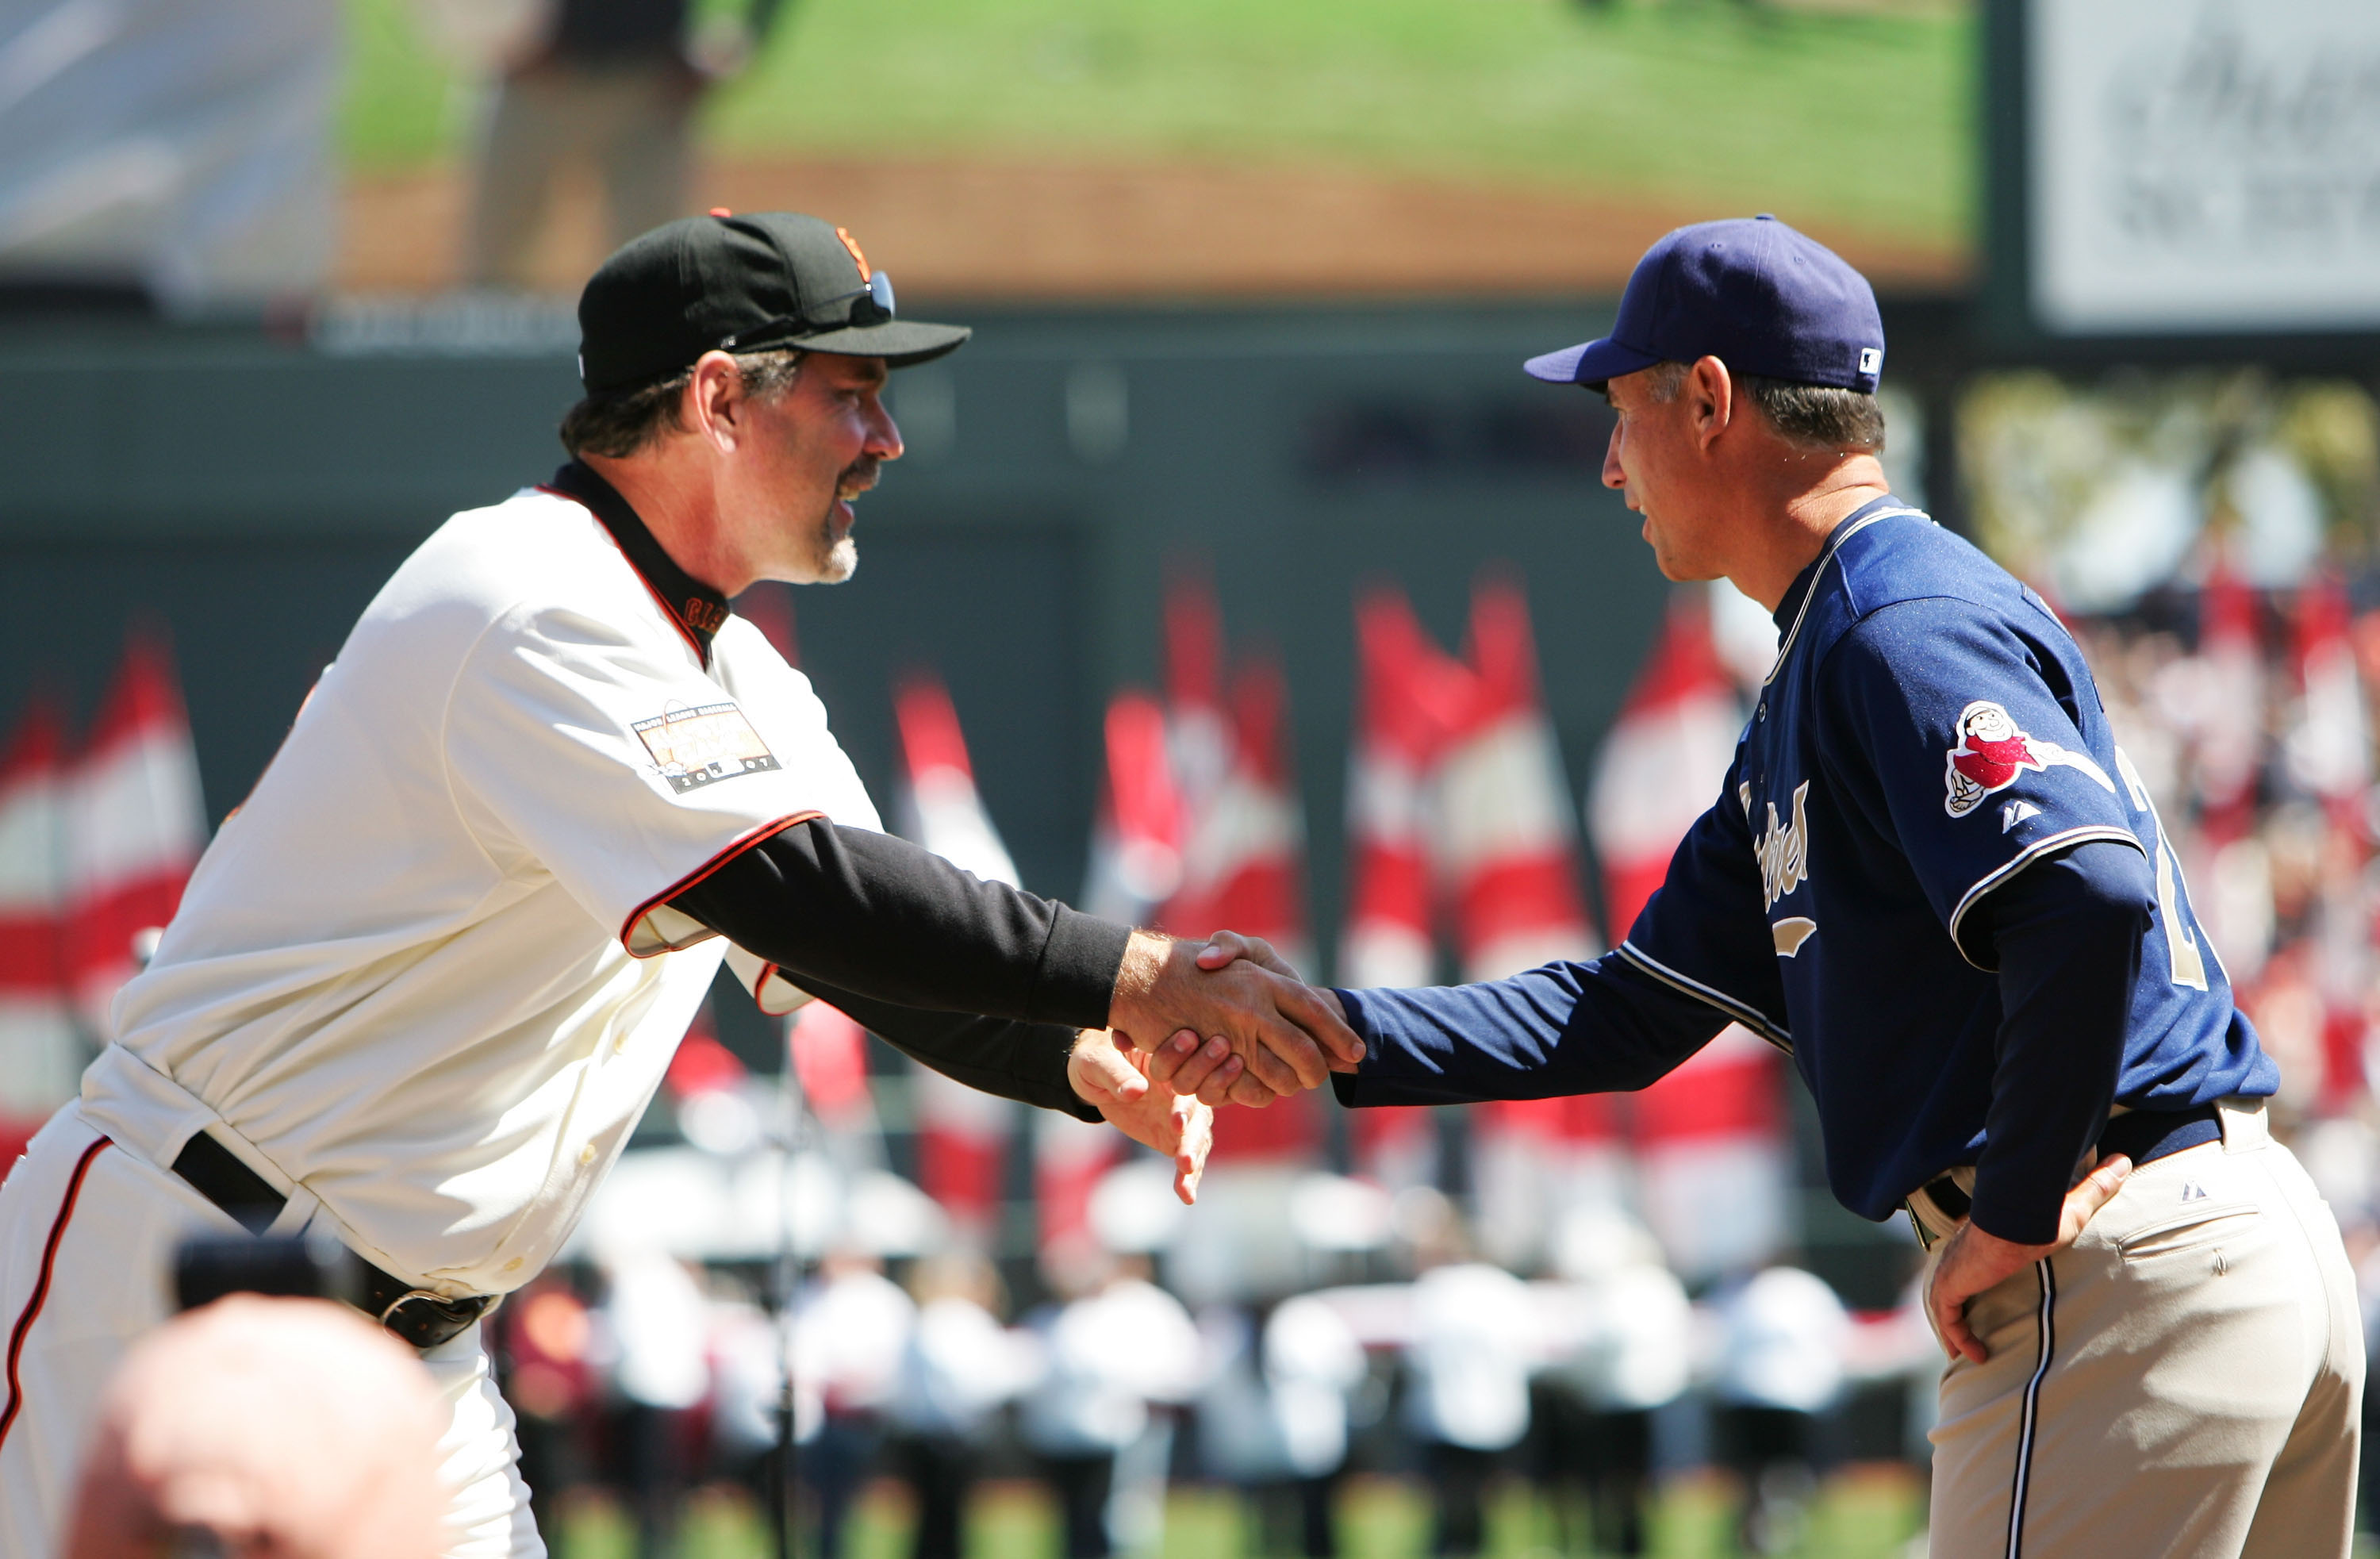 SAN FRANCISCO - APRIL 03:  Manager Bruce Bochy of the San Francisco Giants greets Manager Bud Black of the San Diego Padres during pregame ceremonies on the Opening Day of Major League Baseball on April 3, 2007 at AT&T Park in San Francisco, California.